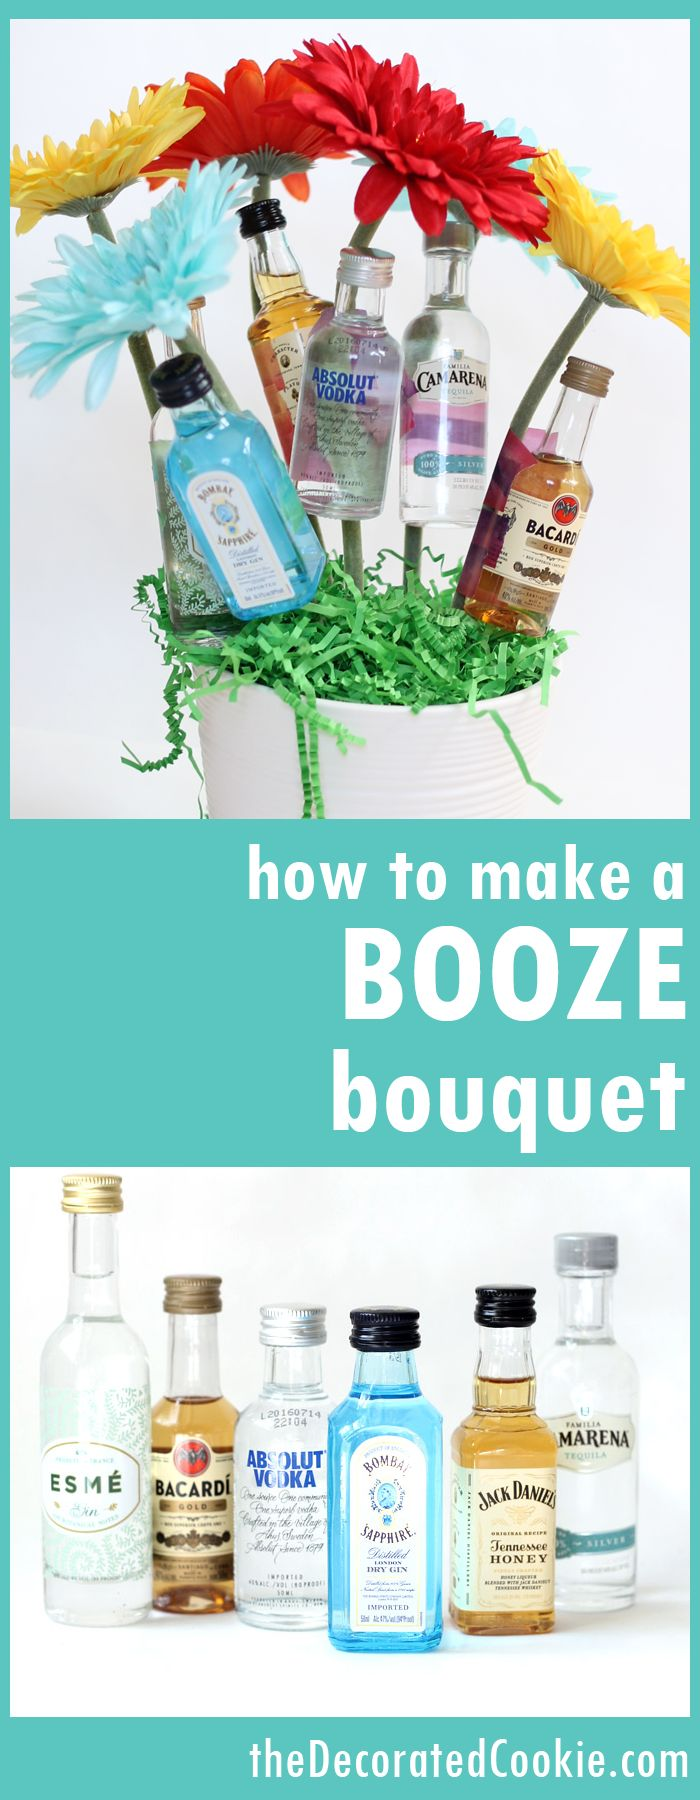 booze bouquet gift idea -- Mother's Day, birthday, housewarming, bridal shower, hostess gift and more!